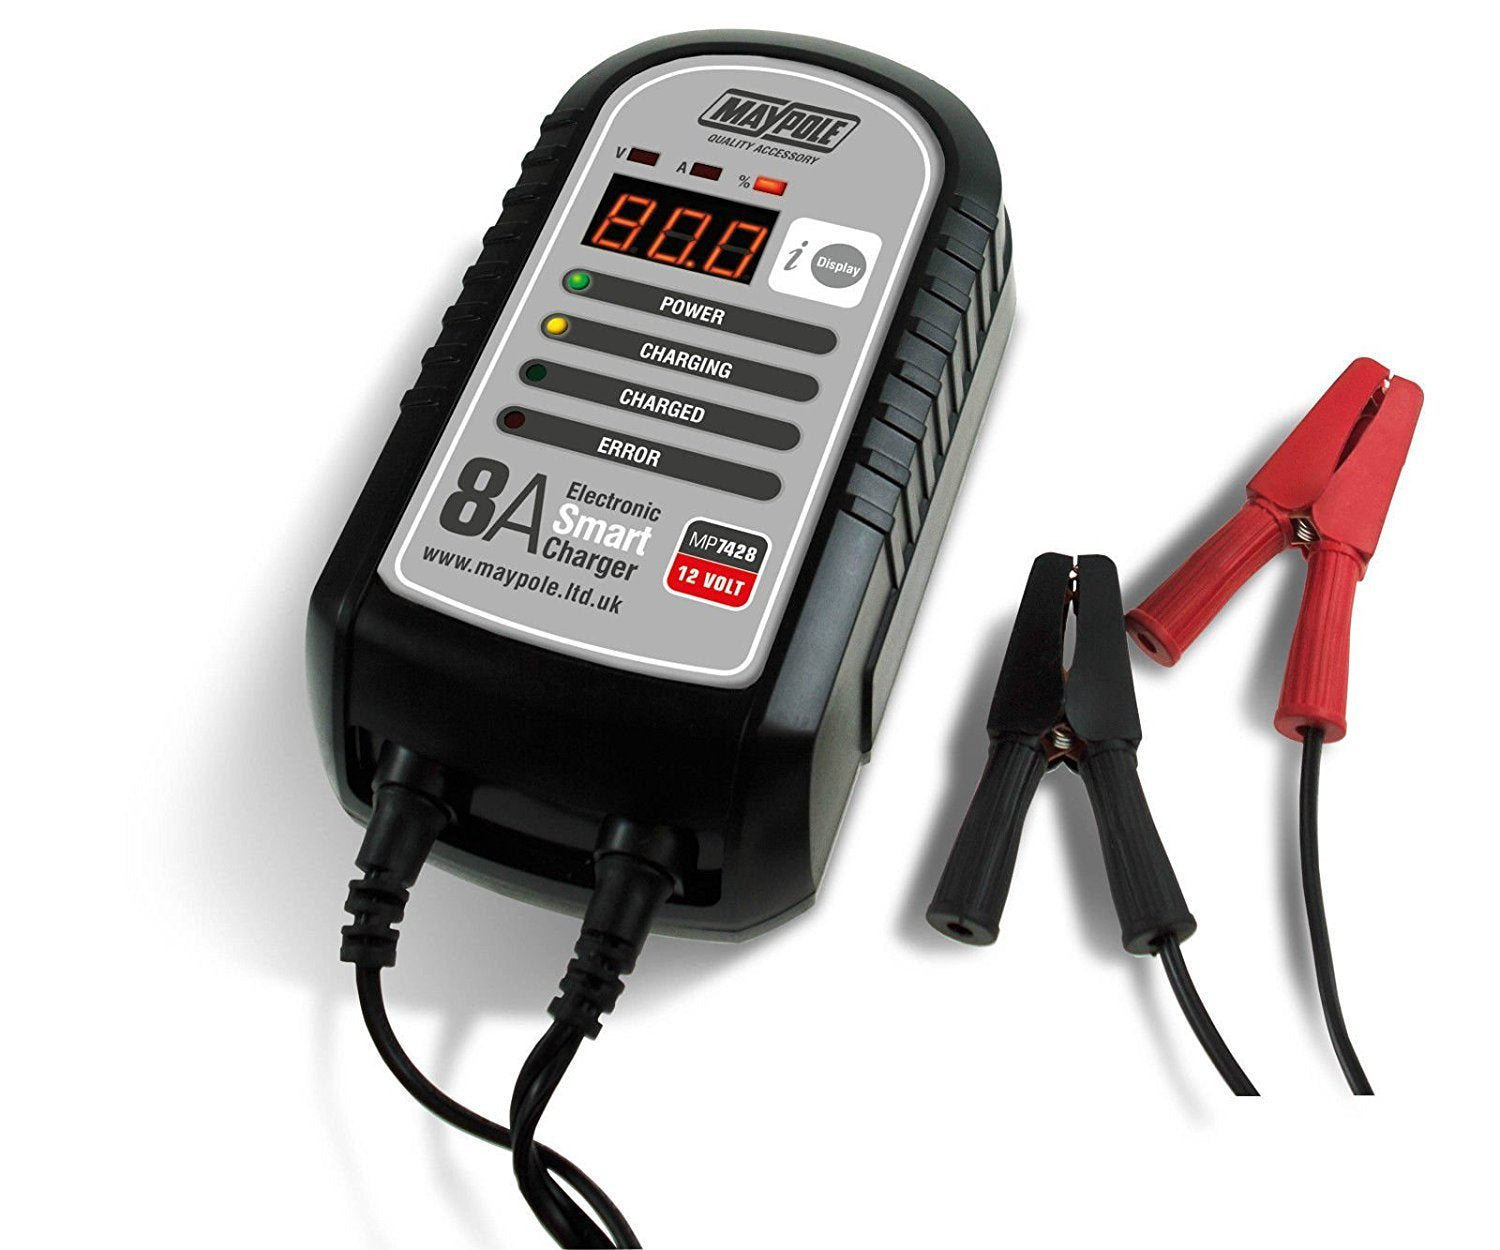 12v 8amp battery charger from Batteryworld.ie